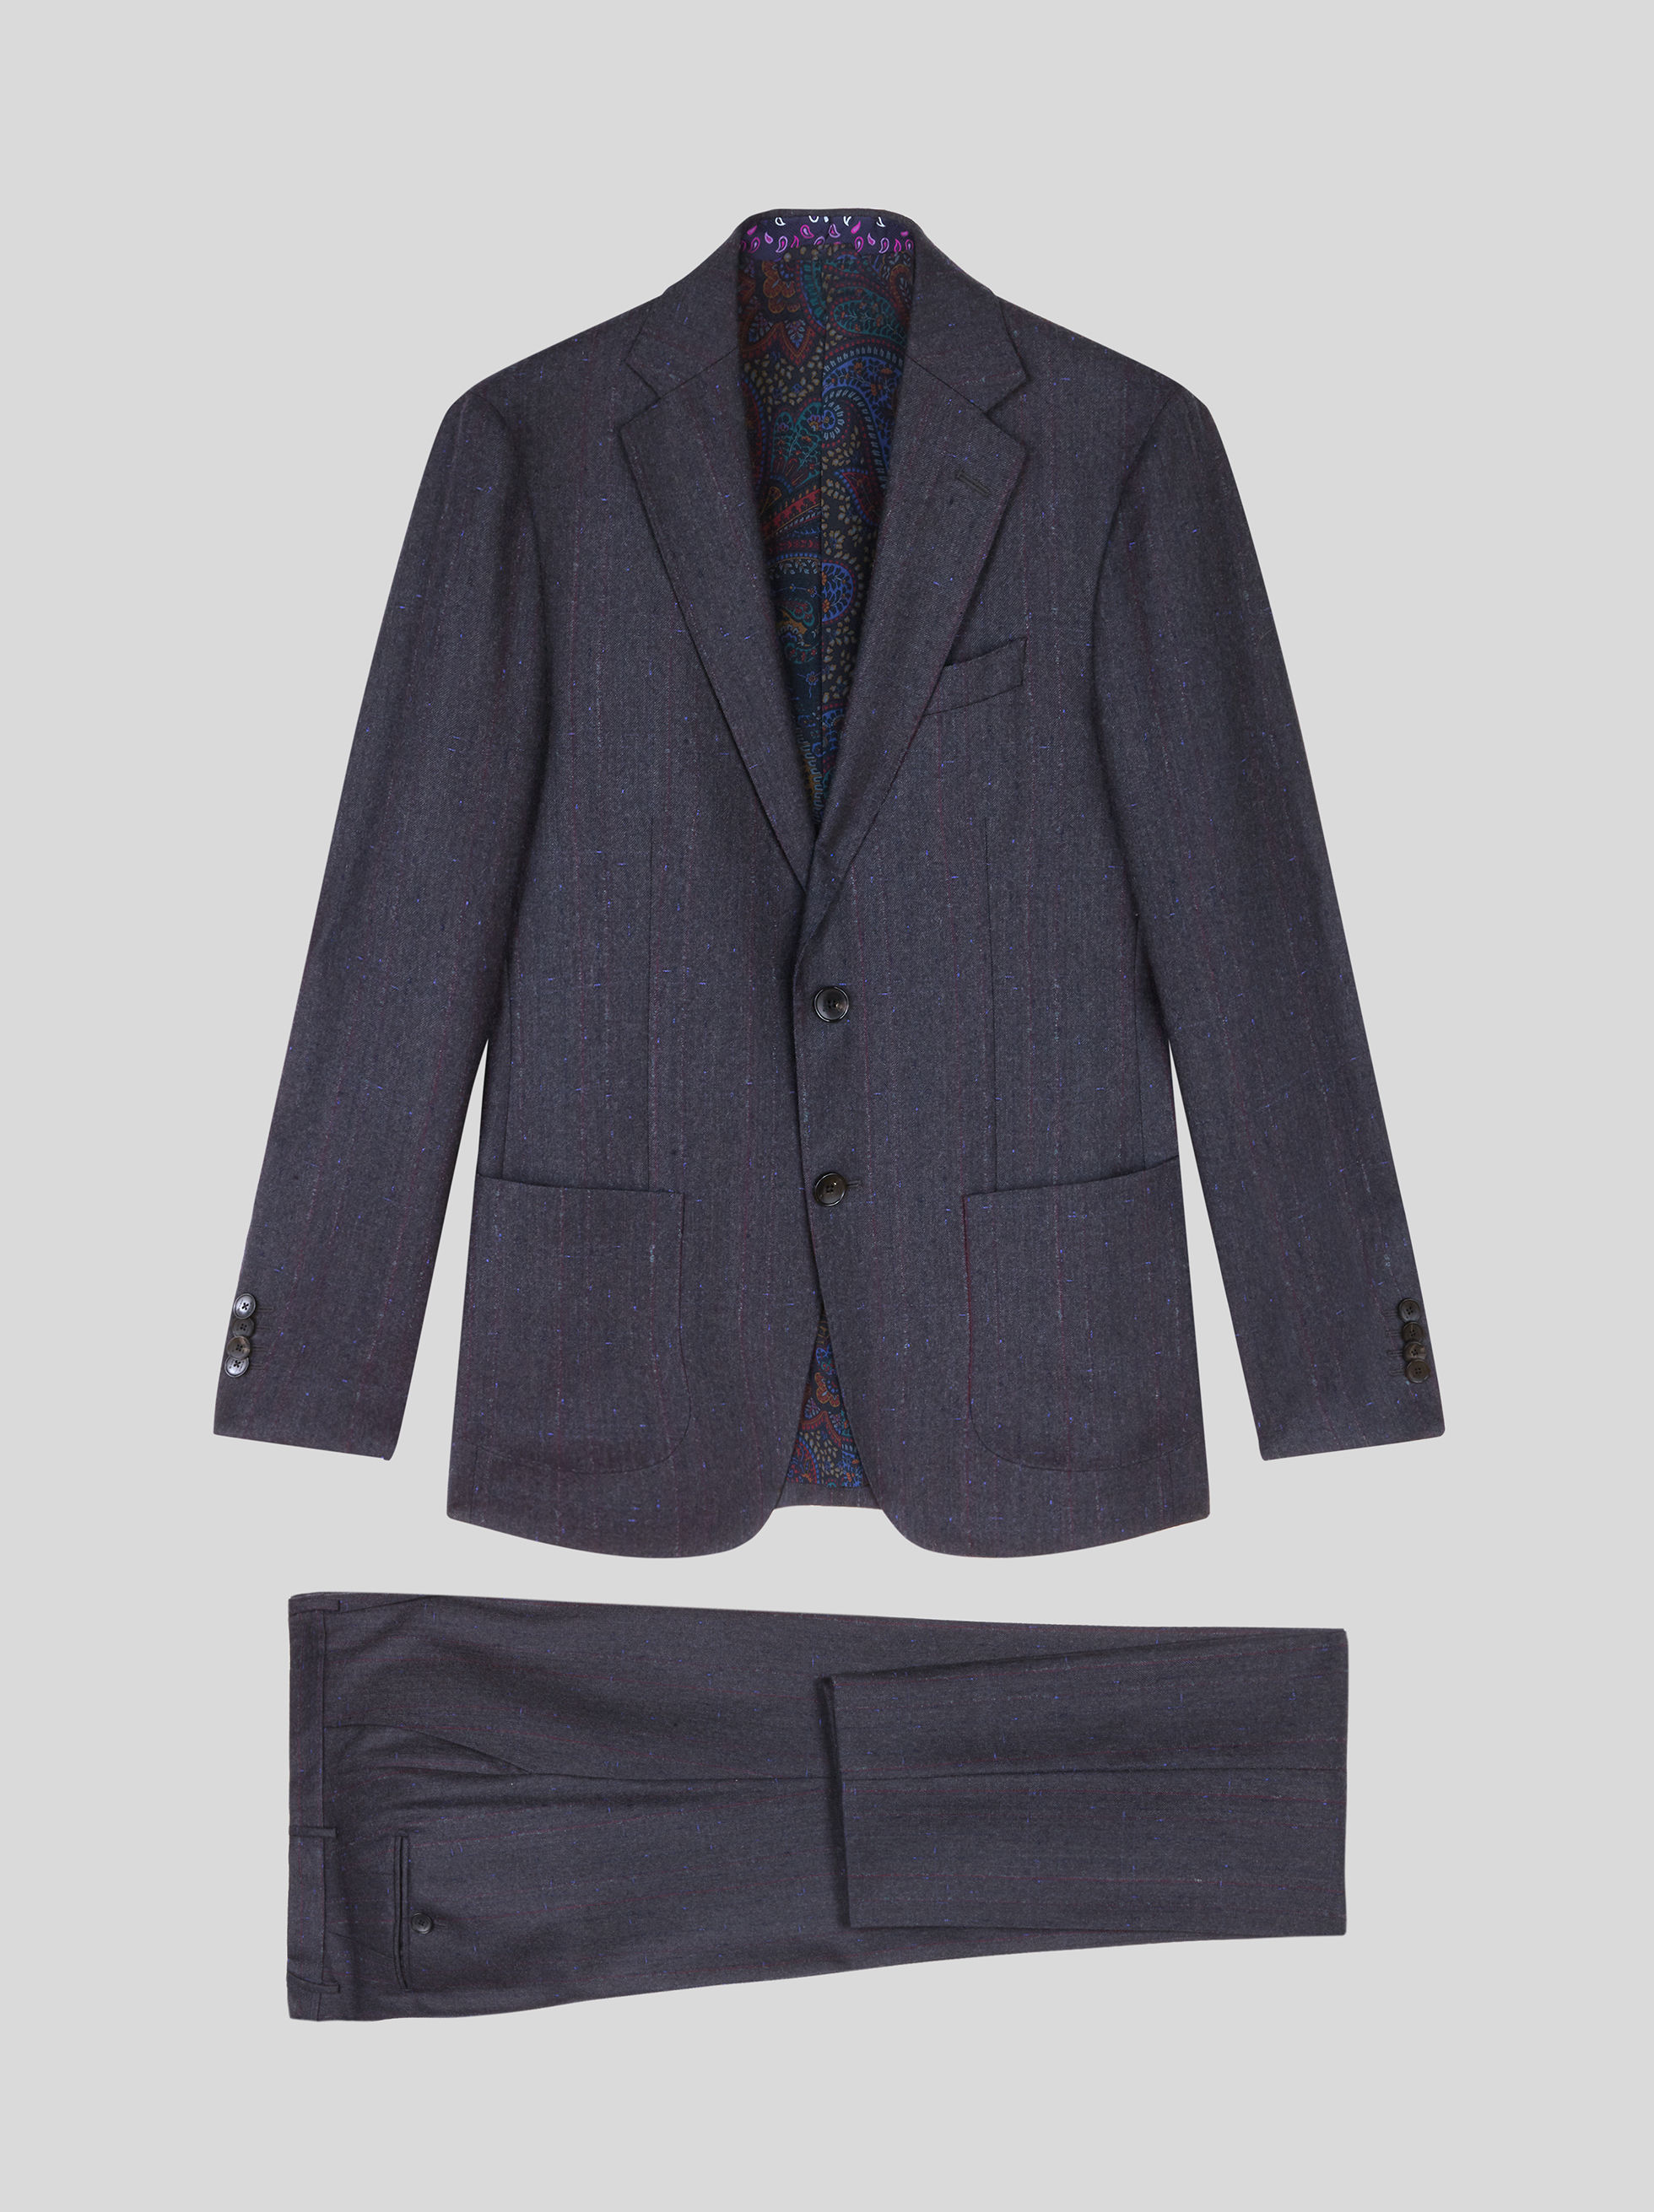 STRIPED WOOL DECONSTRUCTED SUIT